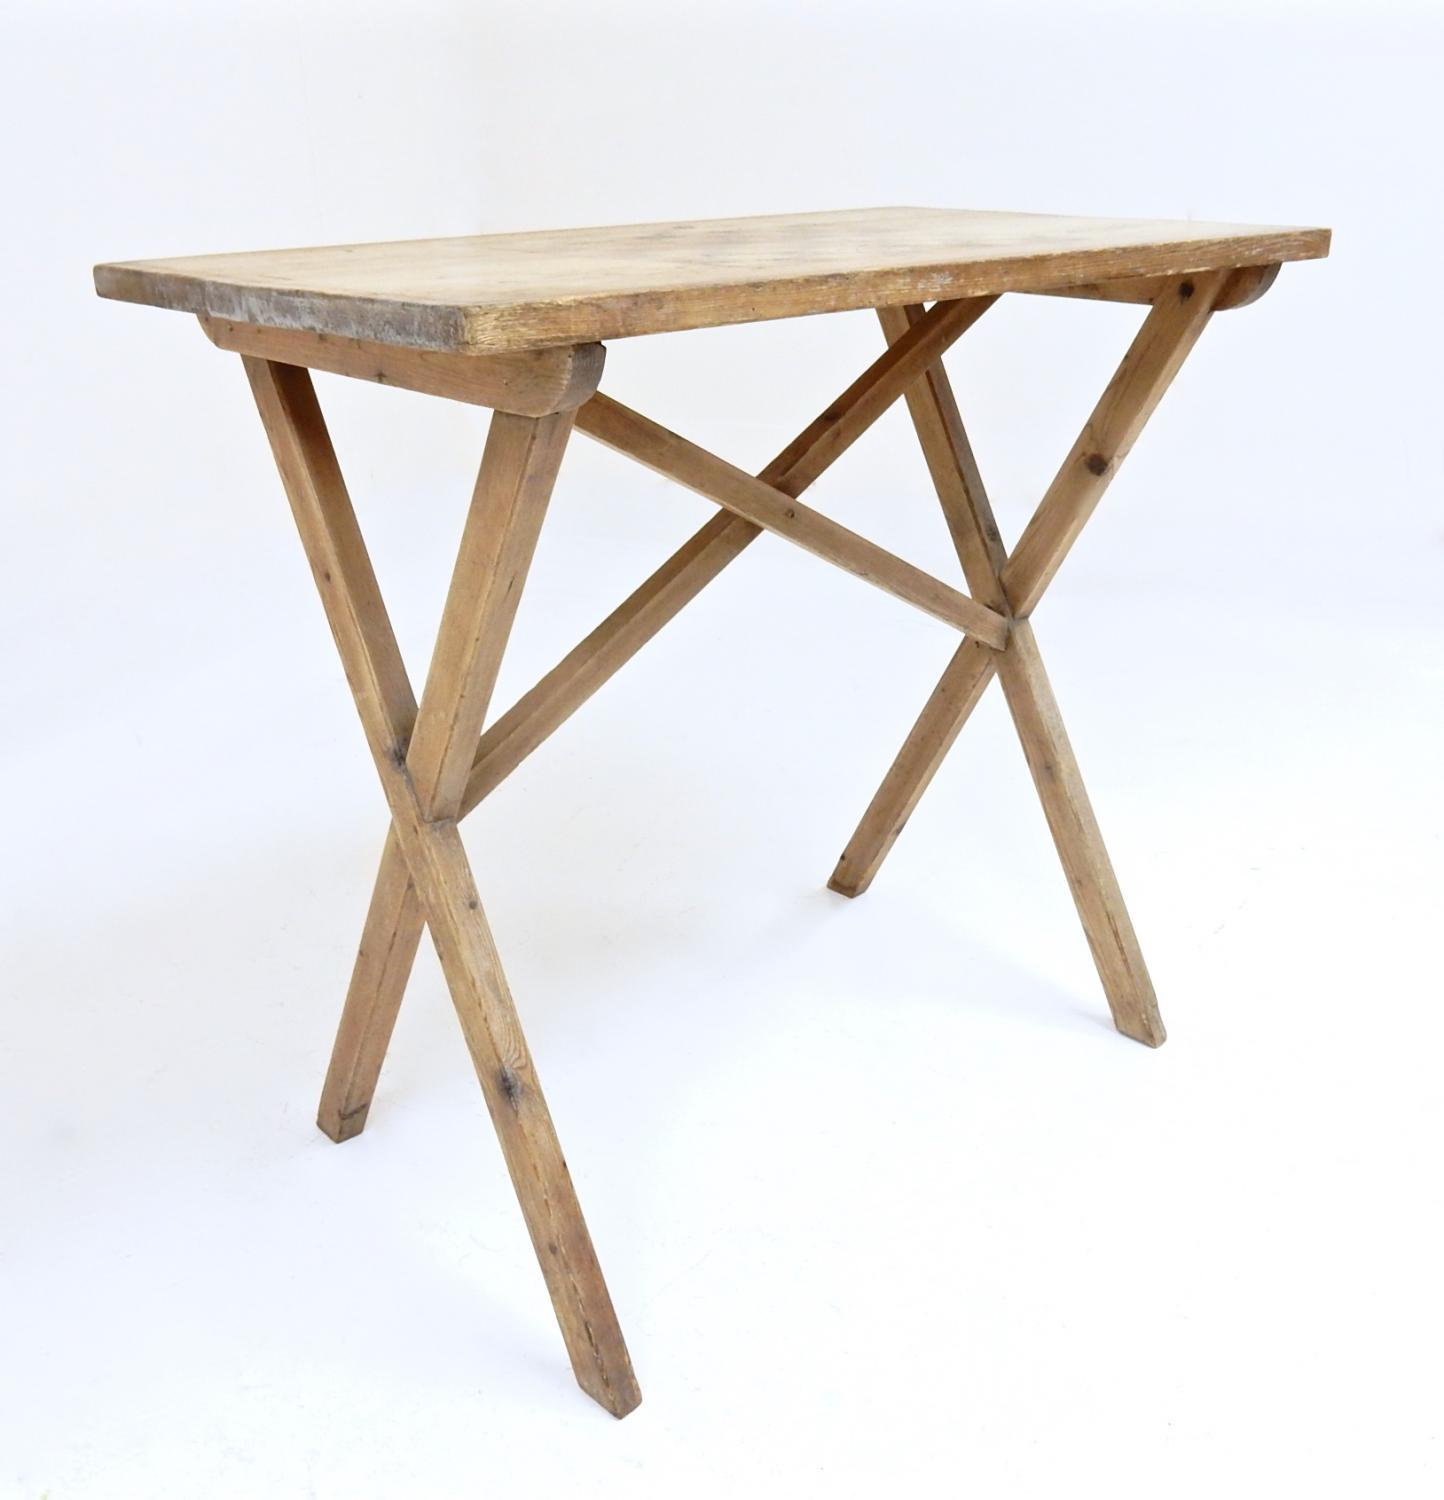 Pine Tavern Table with Gameboard